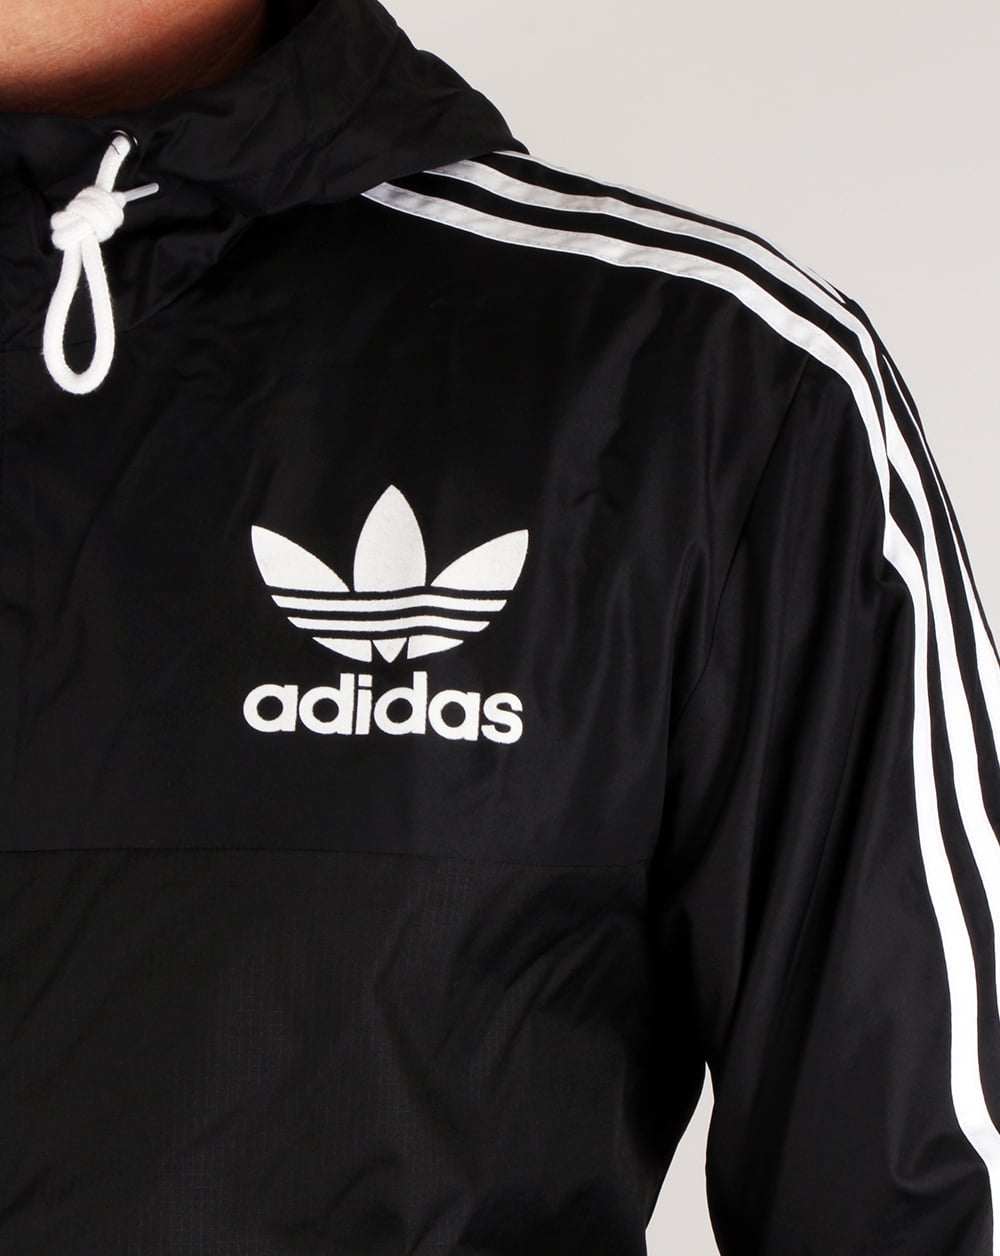 Adidas Originals California Windbreaker Black Jacket Coat Mens